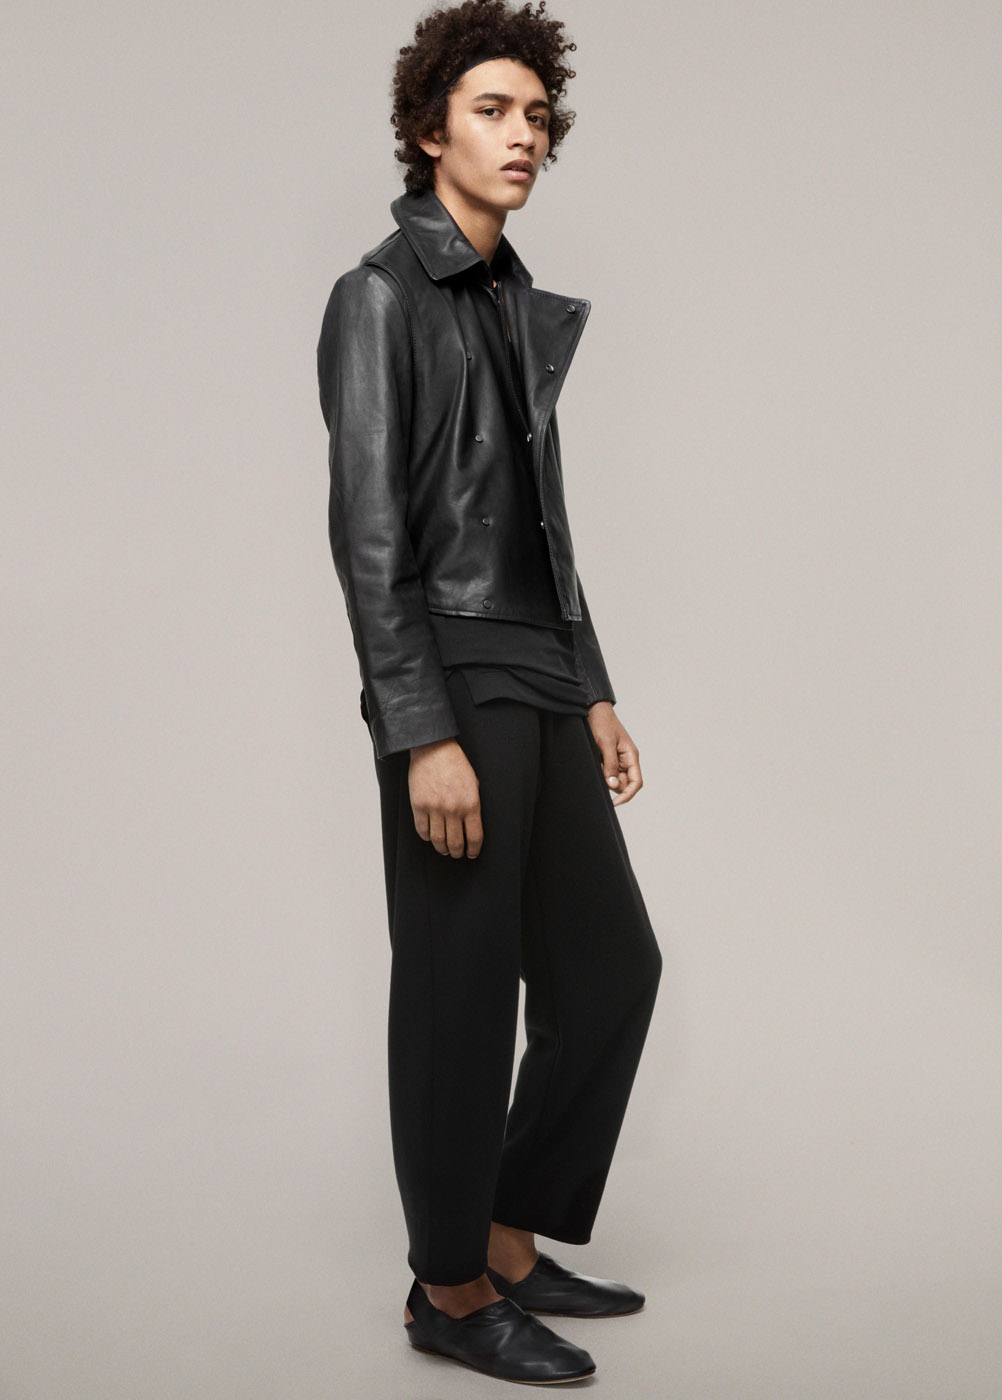 H&M Studio Spring Summer 2017 collection (23)